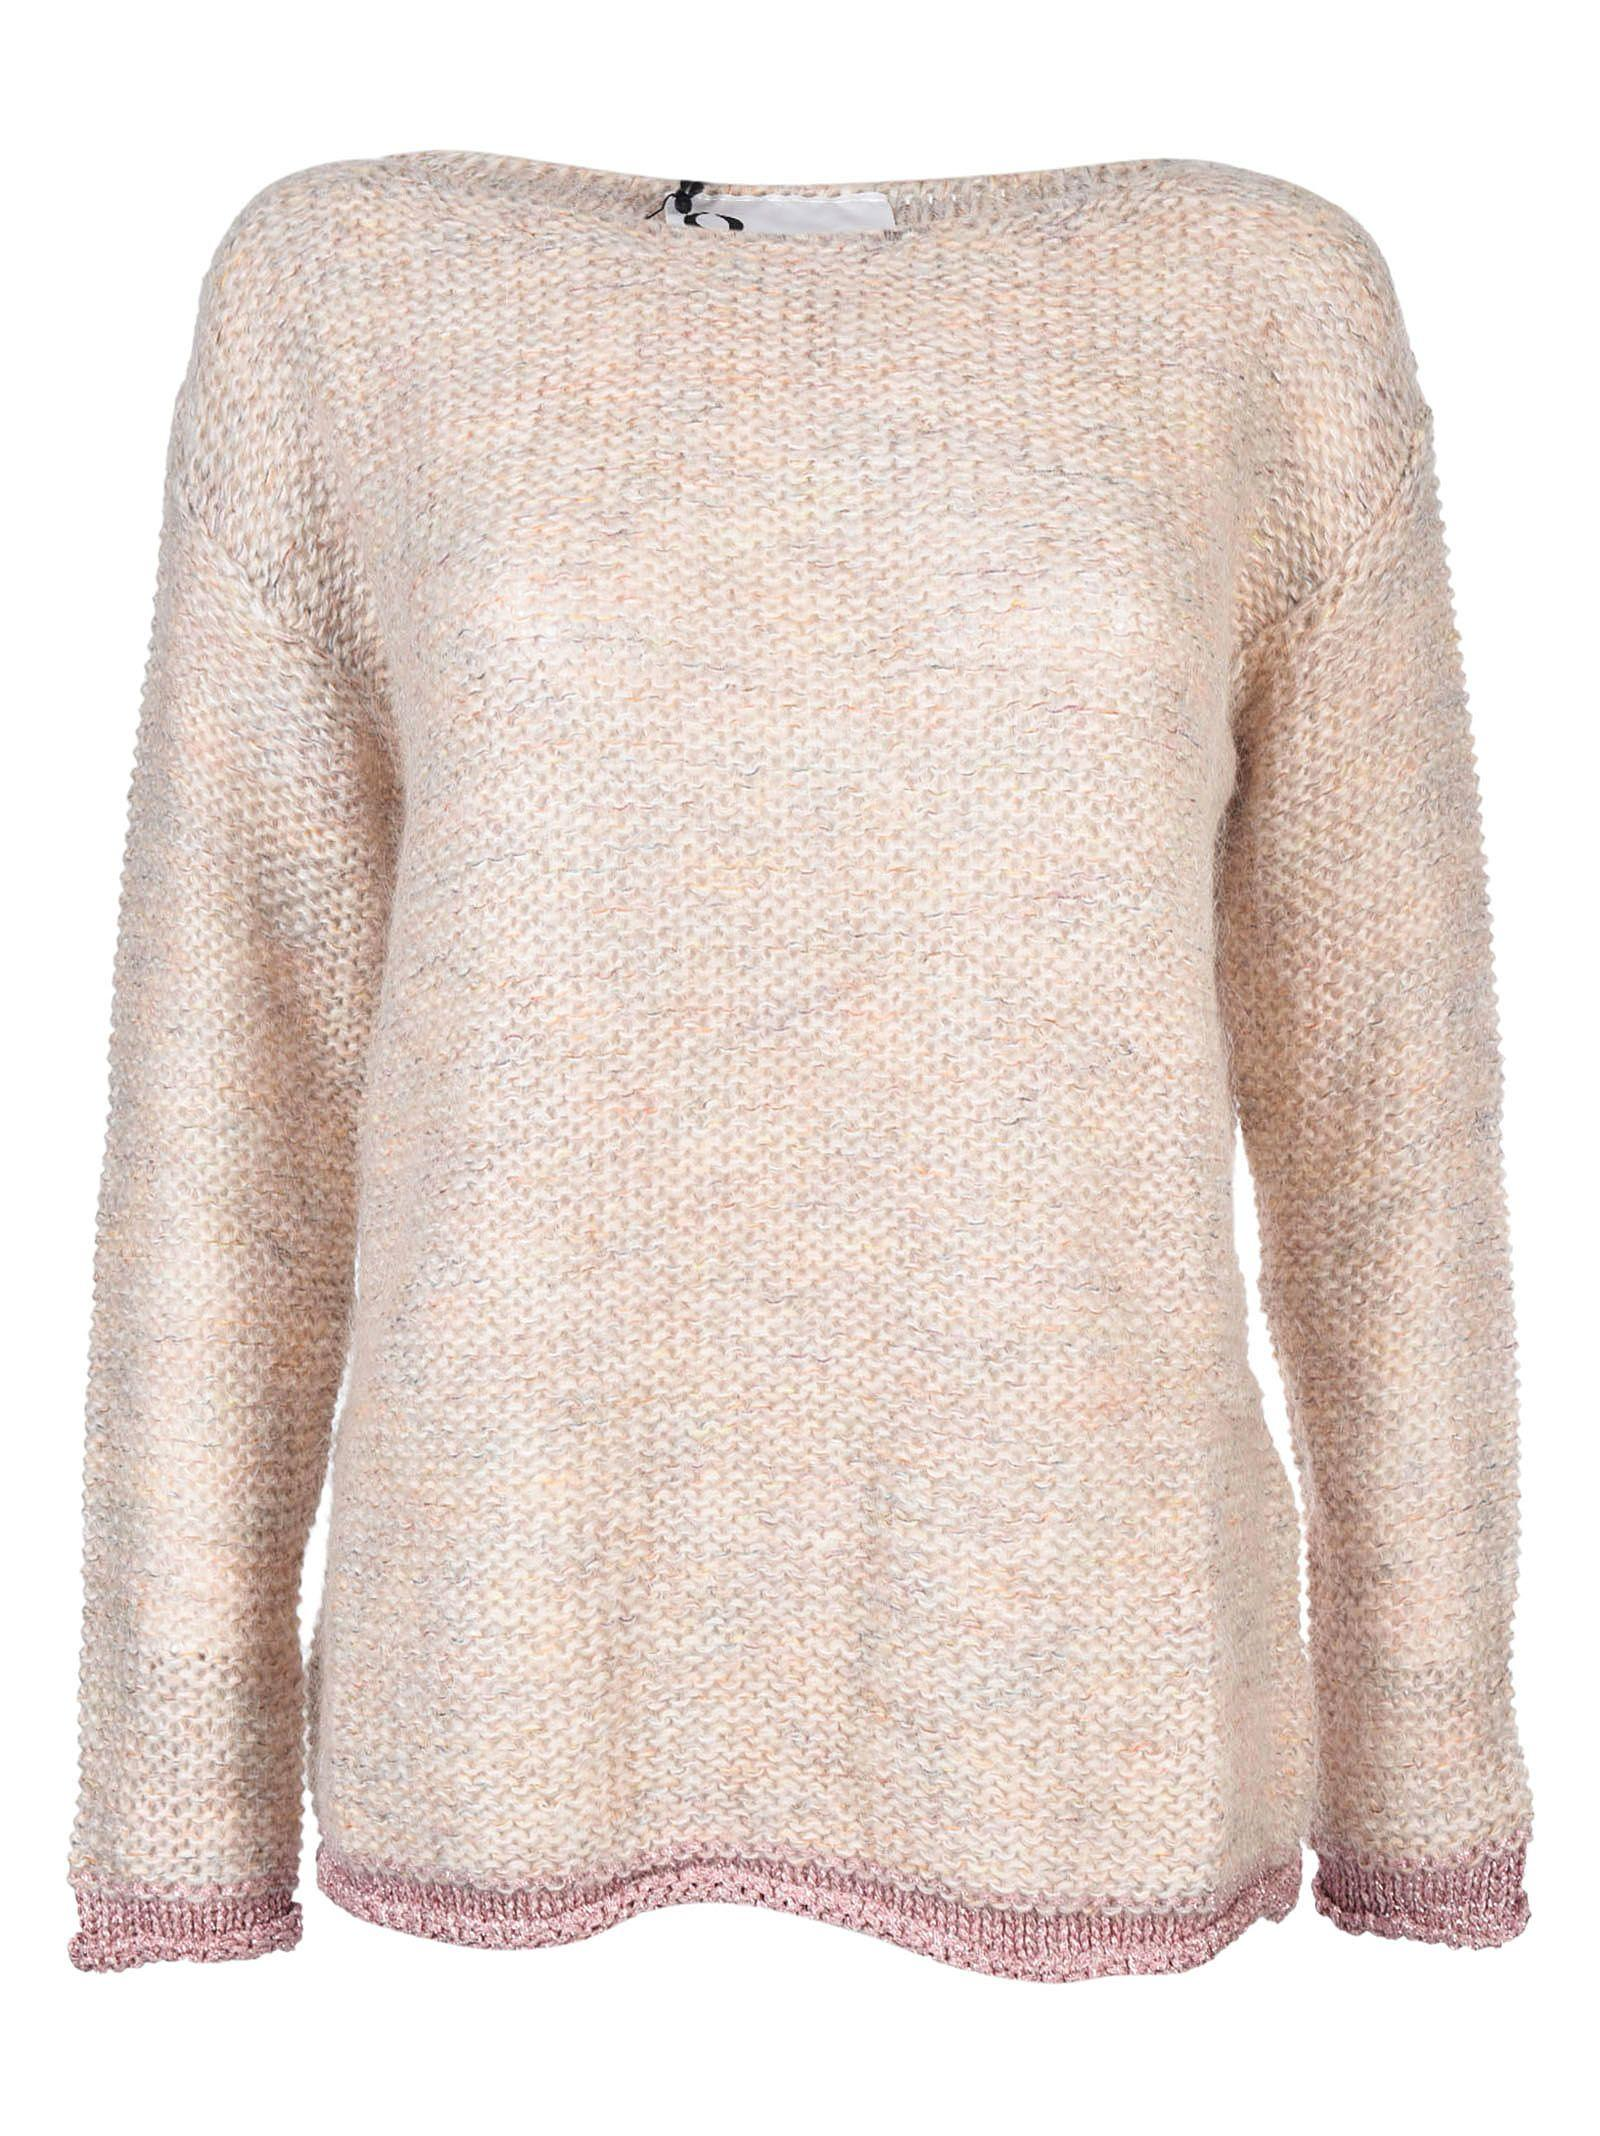 8pm Knitted Sweater In White